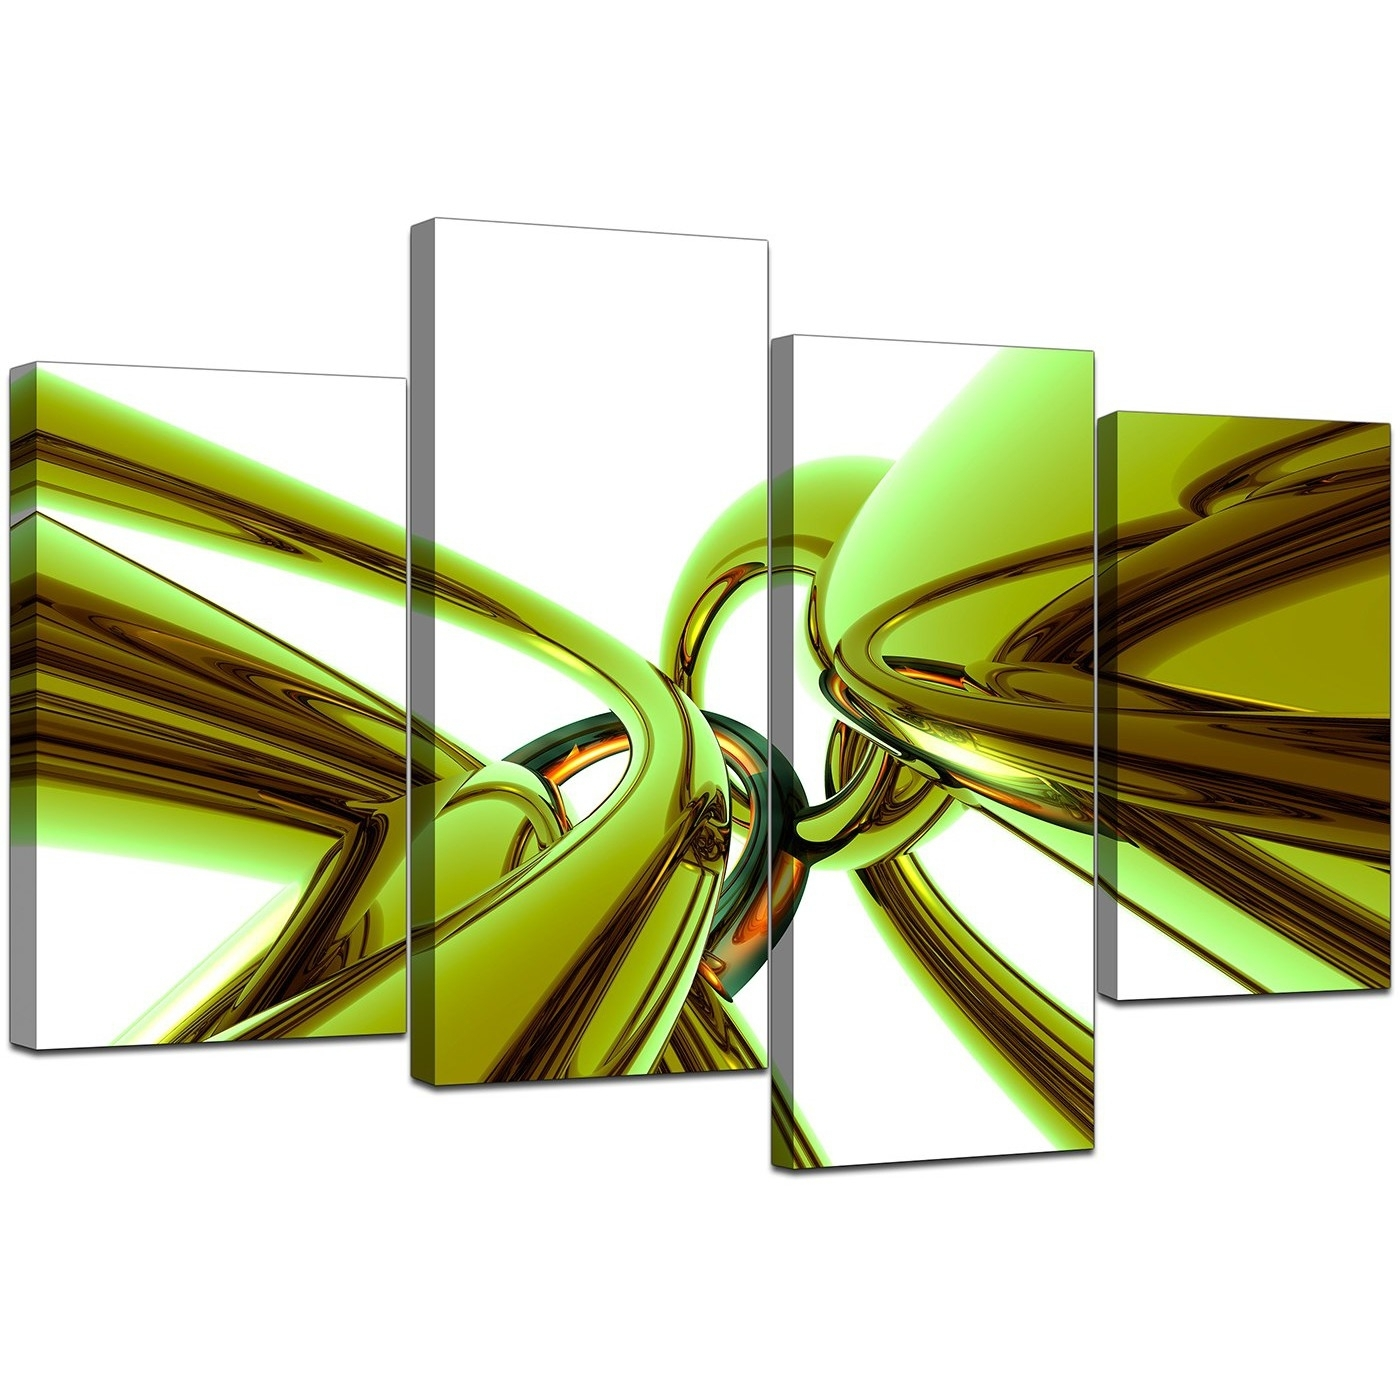 Abstract Canvas Wall Art In Green For Your Living Room - Set Of 4 regarding Green Wall Art (Image 2 of 20)